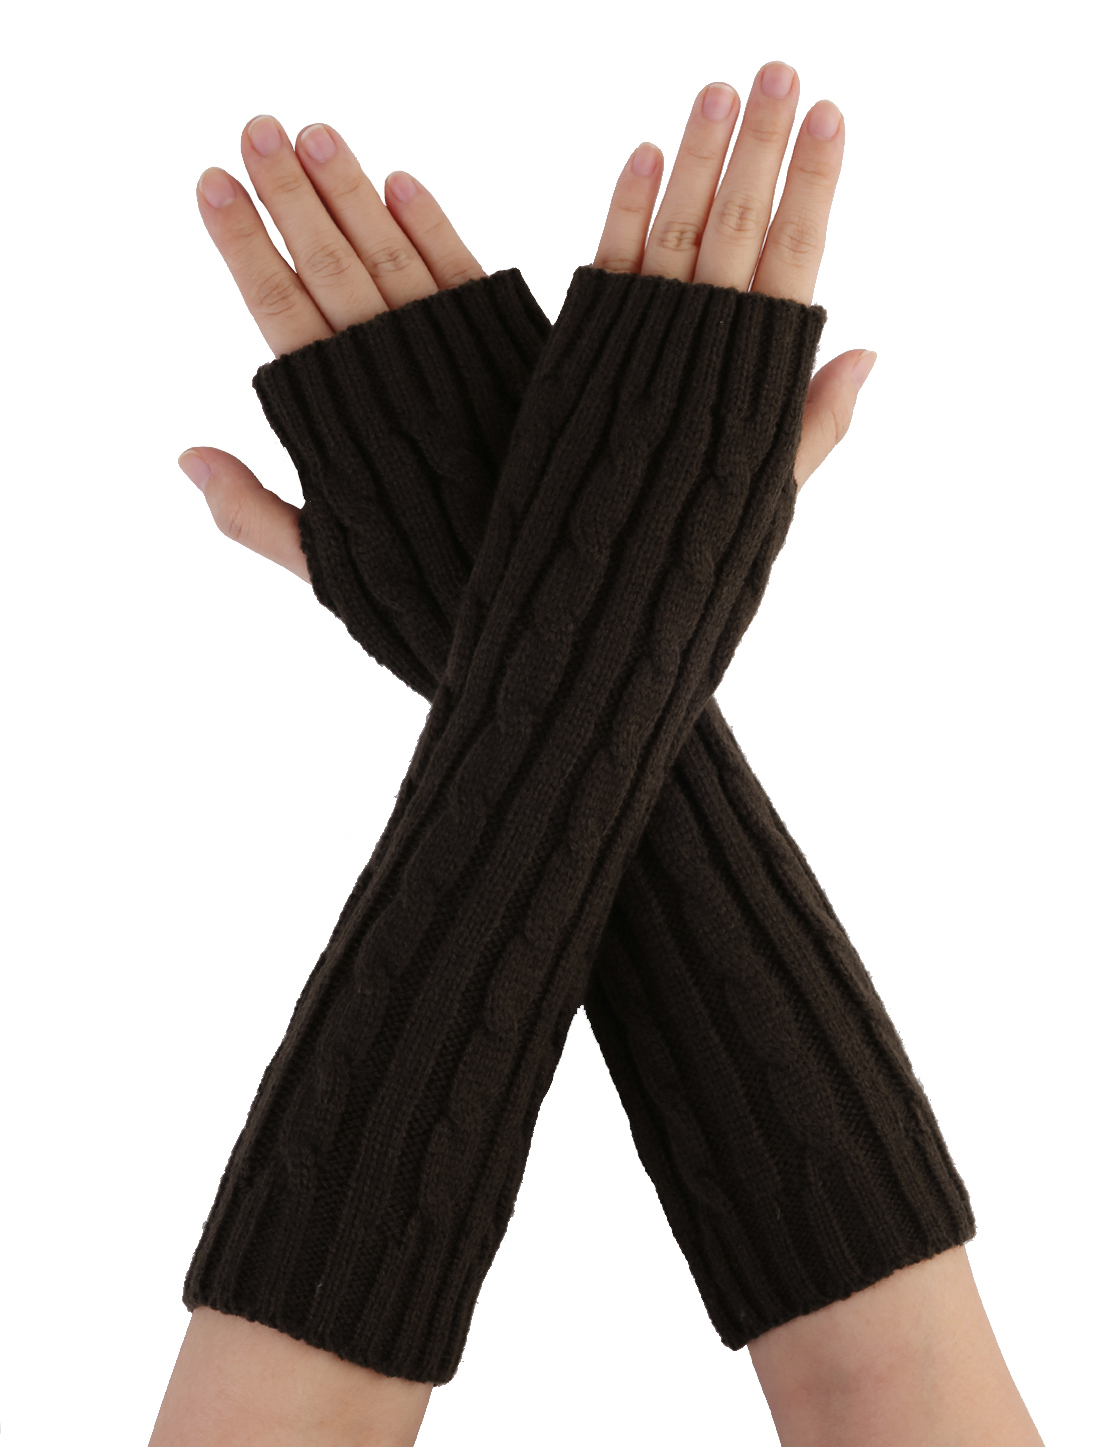 Unisex Coffee Color Textured Fingerless Style Arm Warmer Gloves